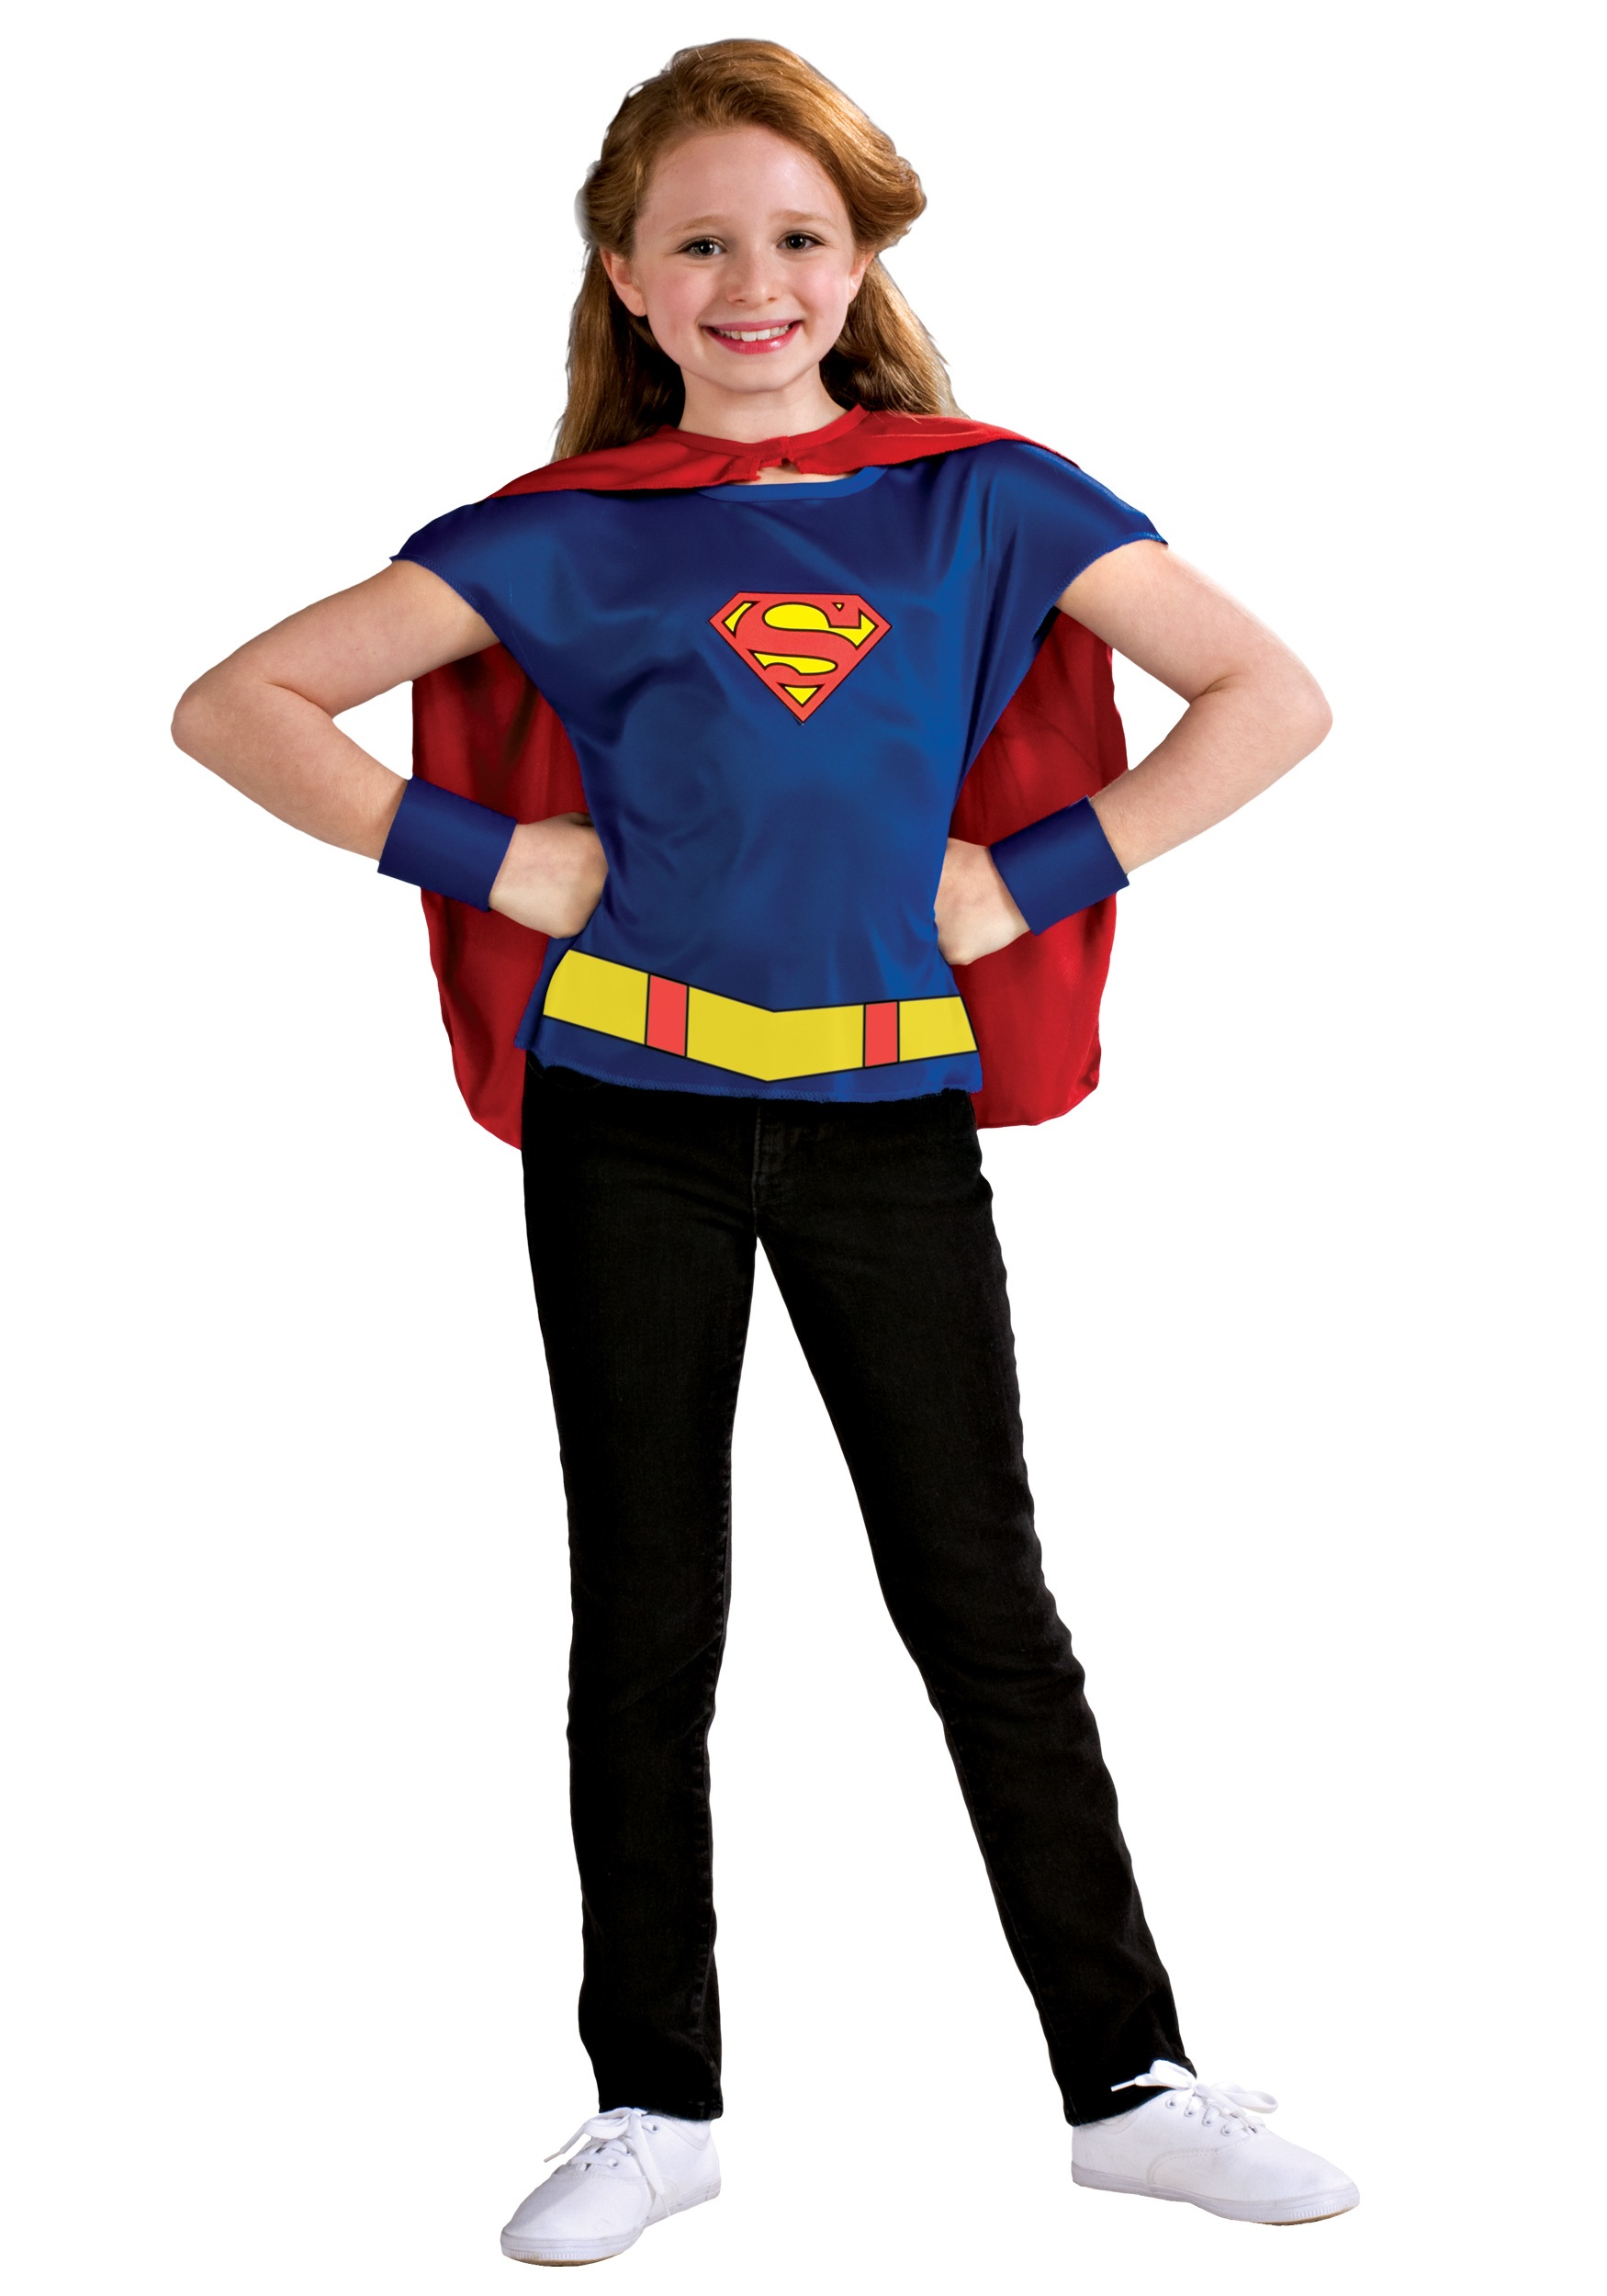 Supergirl Costume Set  sc 1 st  Halloween Costumes : superhero girl costumes  - Germanpascual.Com